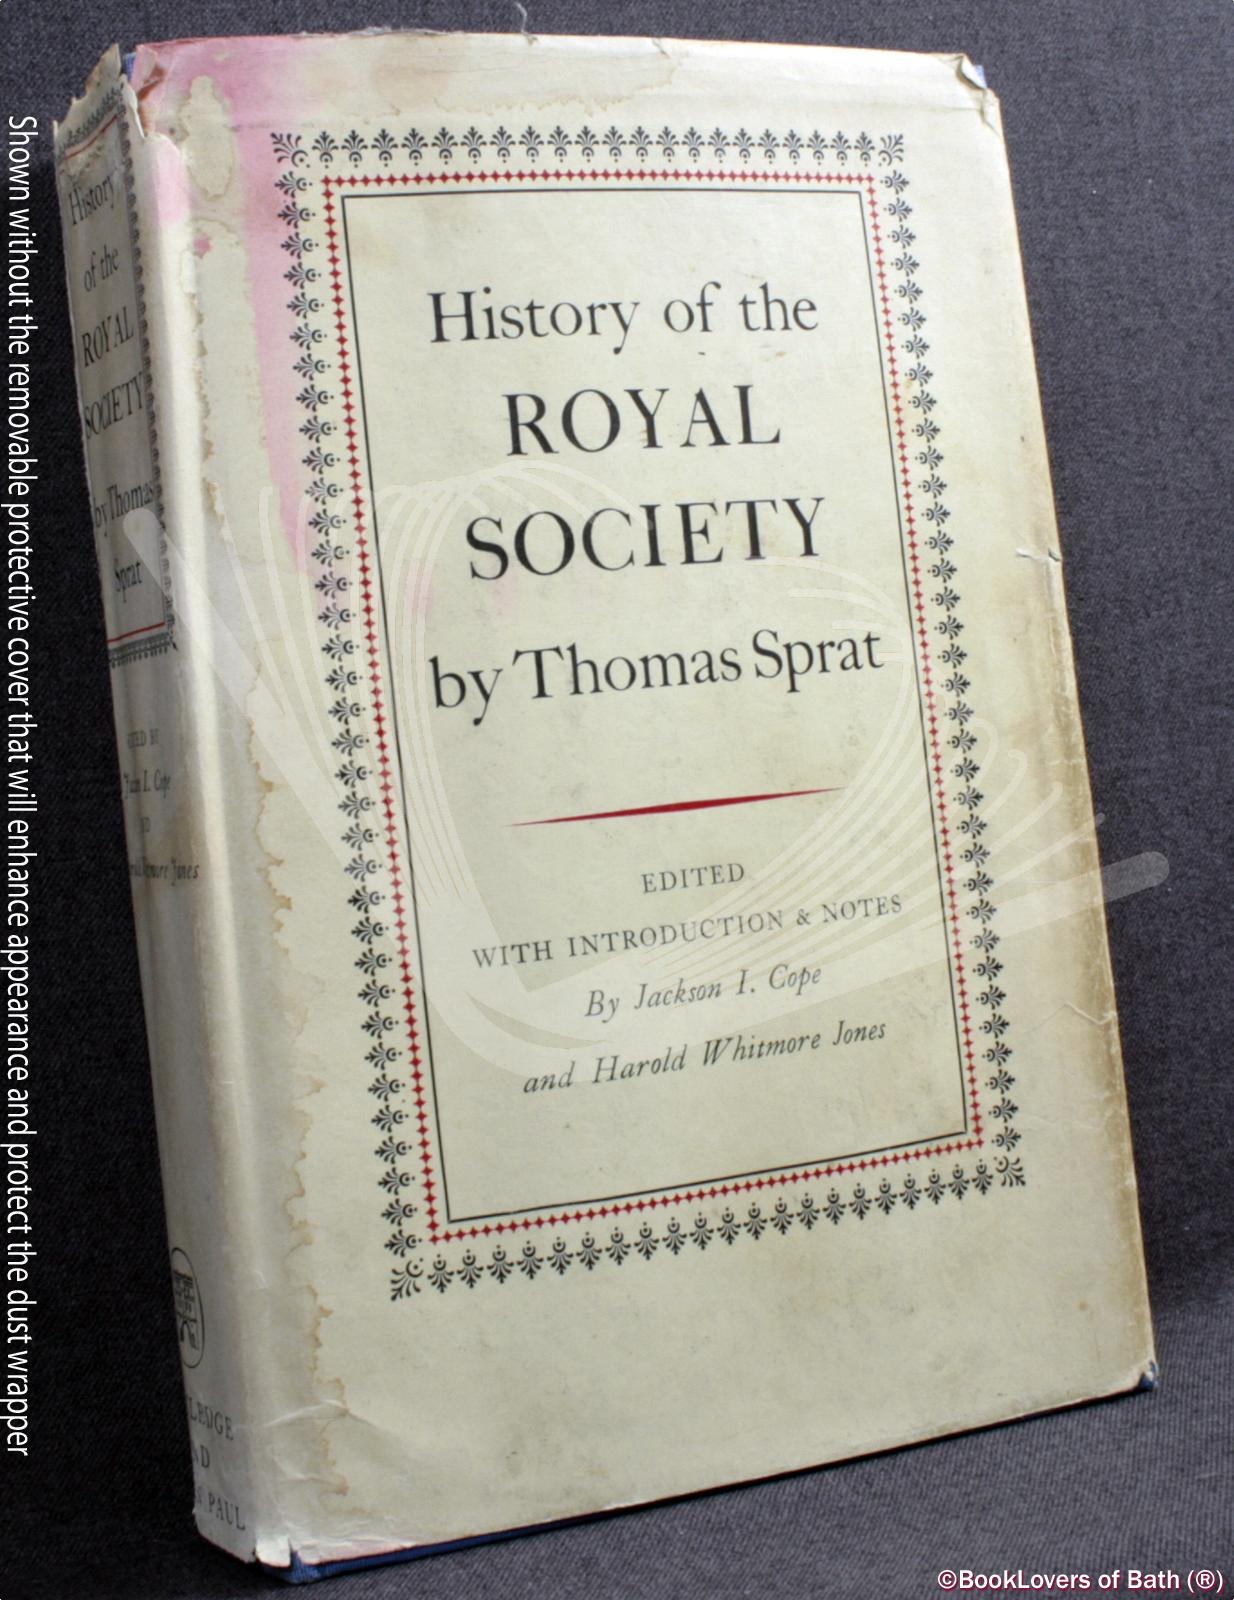 History of the Royal Society Edited with Critical Apparatus by Jackson I. Cope and Harold Whitmore Jones - Thomas Sprat